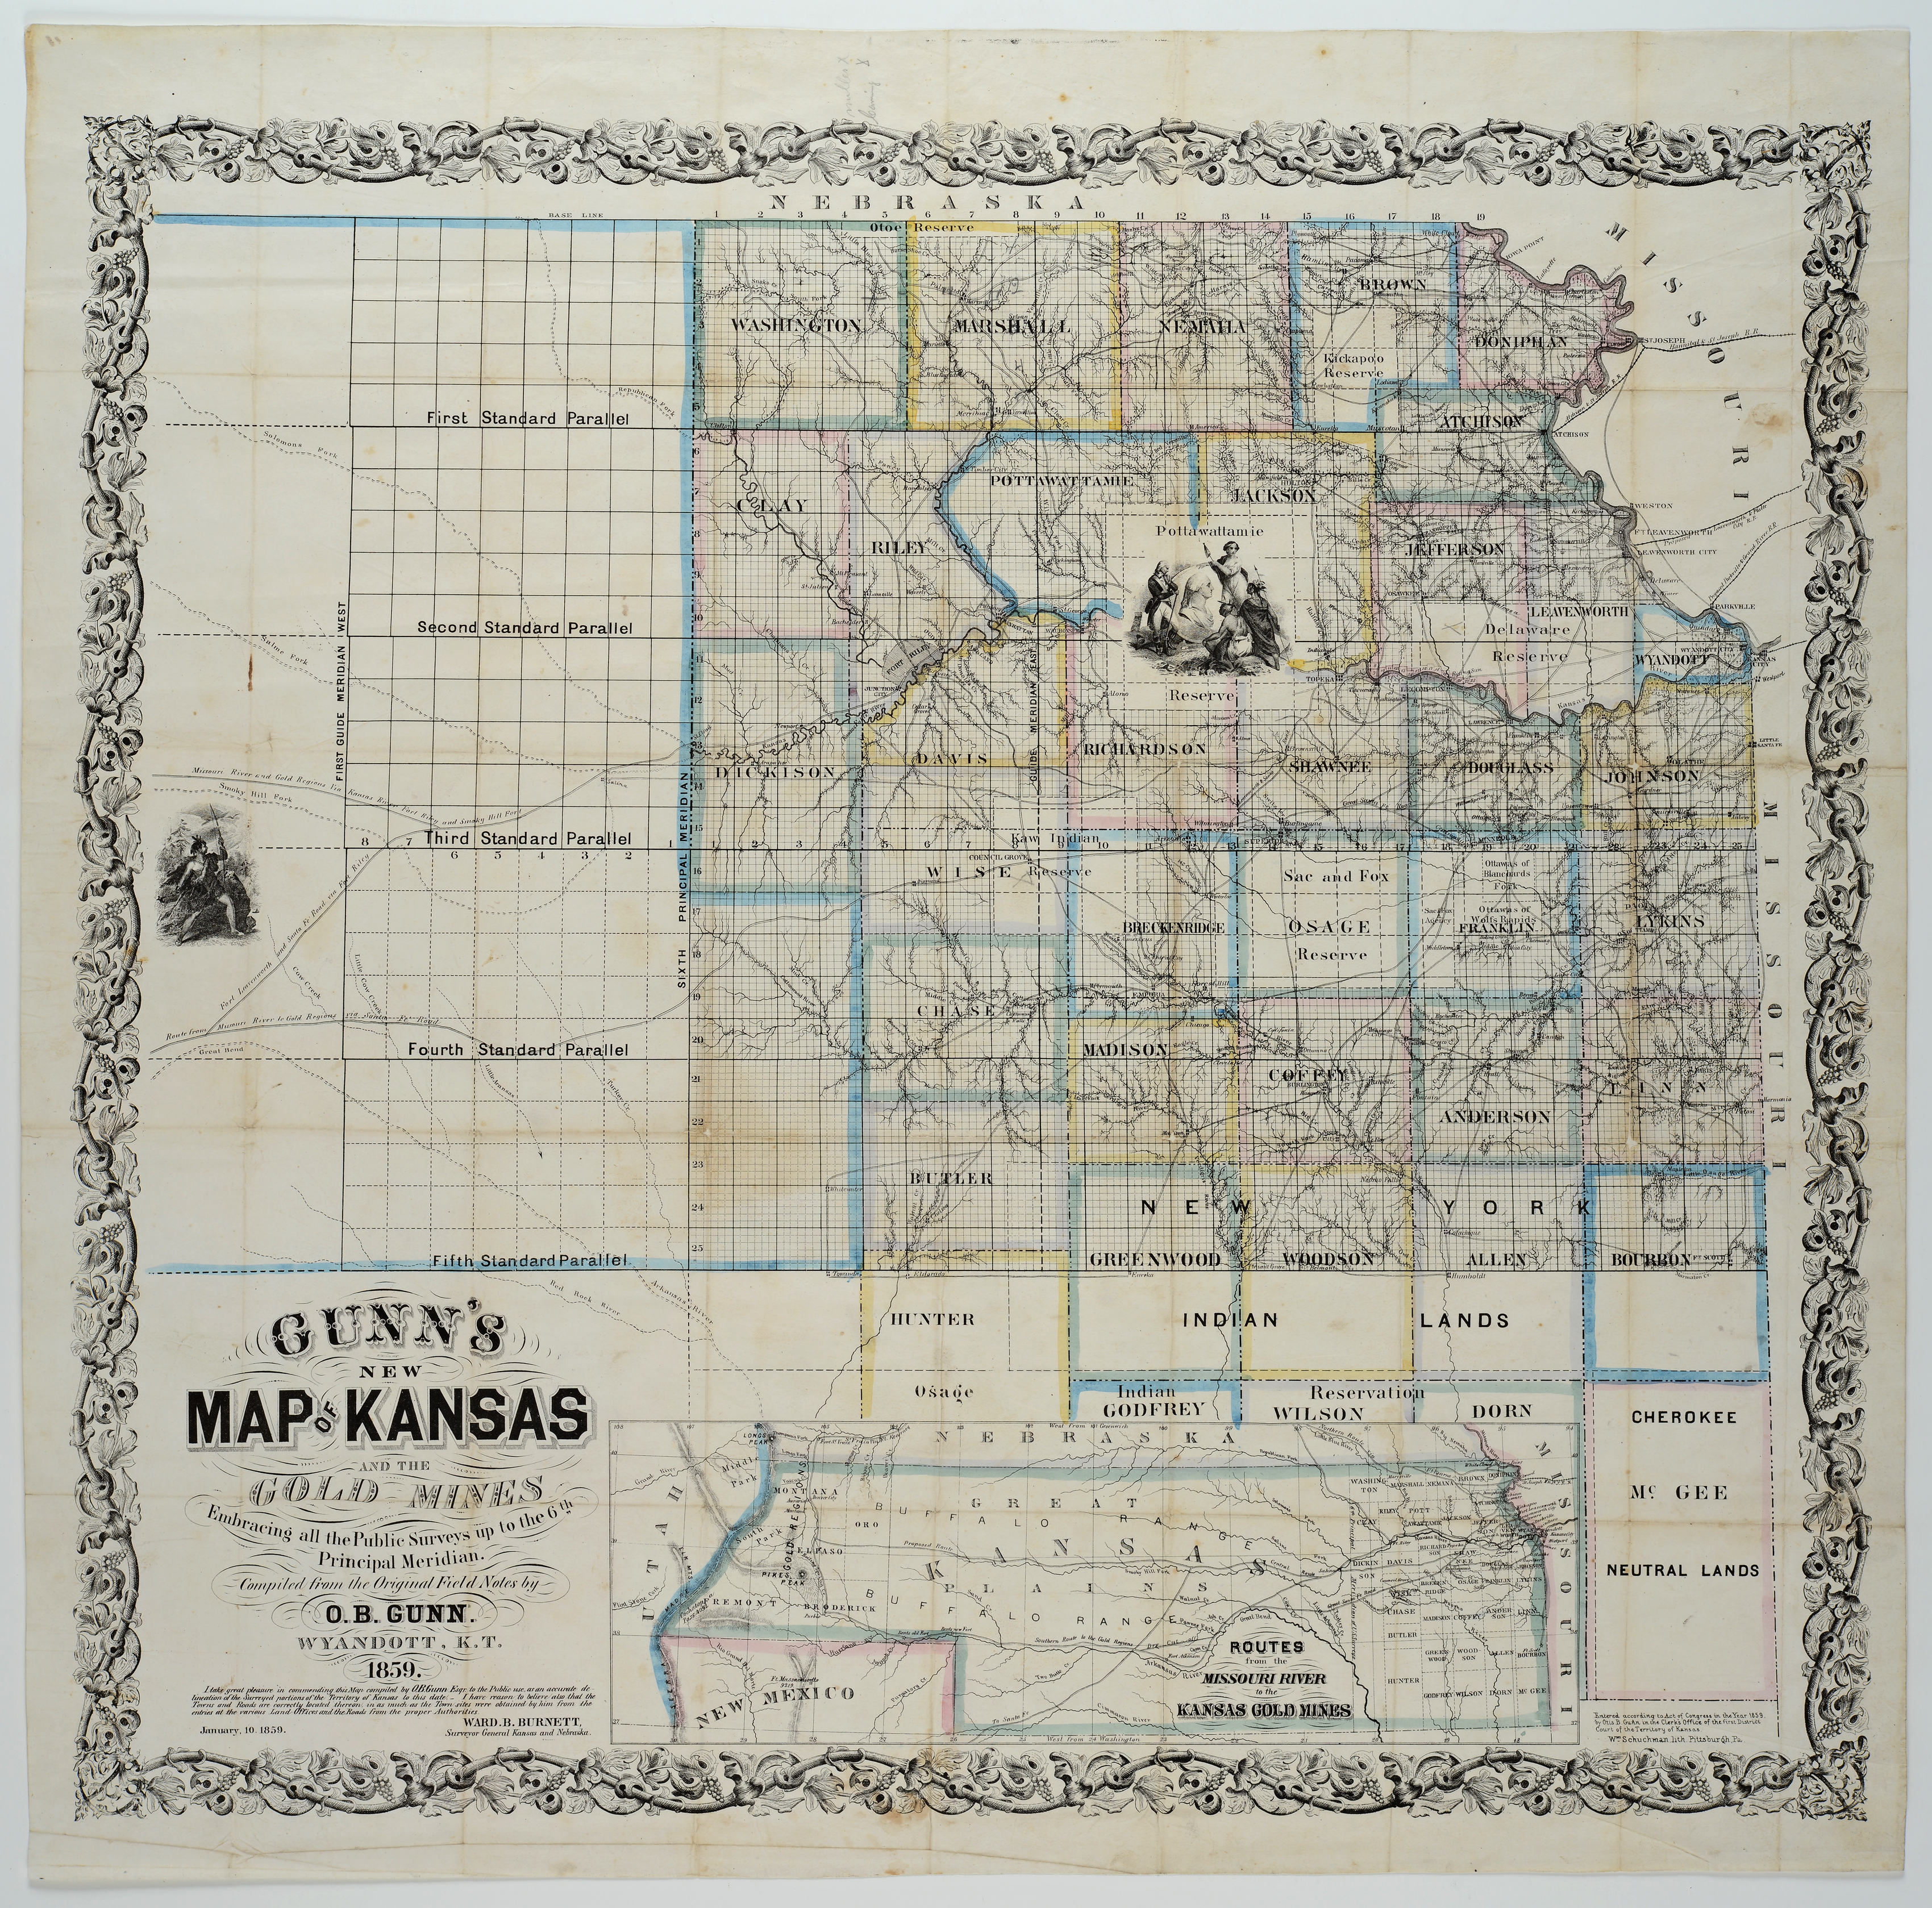 Gunn's New Map of Kansas to the Gold Mines - Kansas Memory ... on road map of kansas, antique map of kansas, large map of kansas, physical map of kansas, radon map of kansas, blank map of kansas,